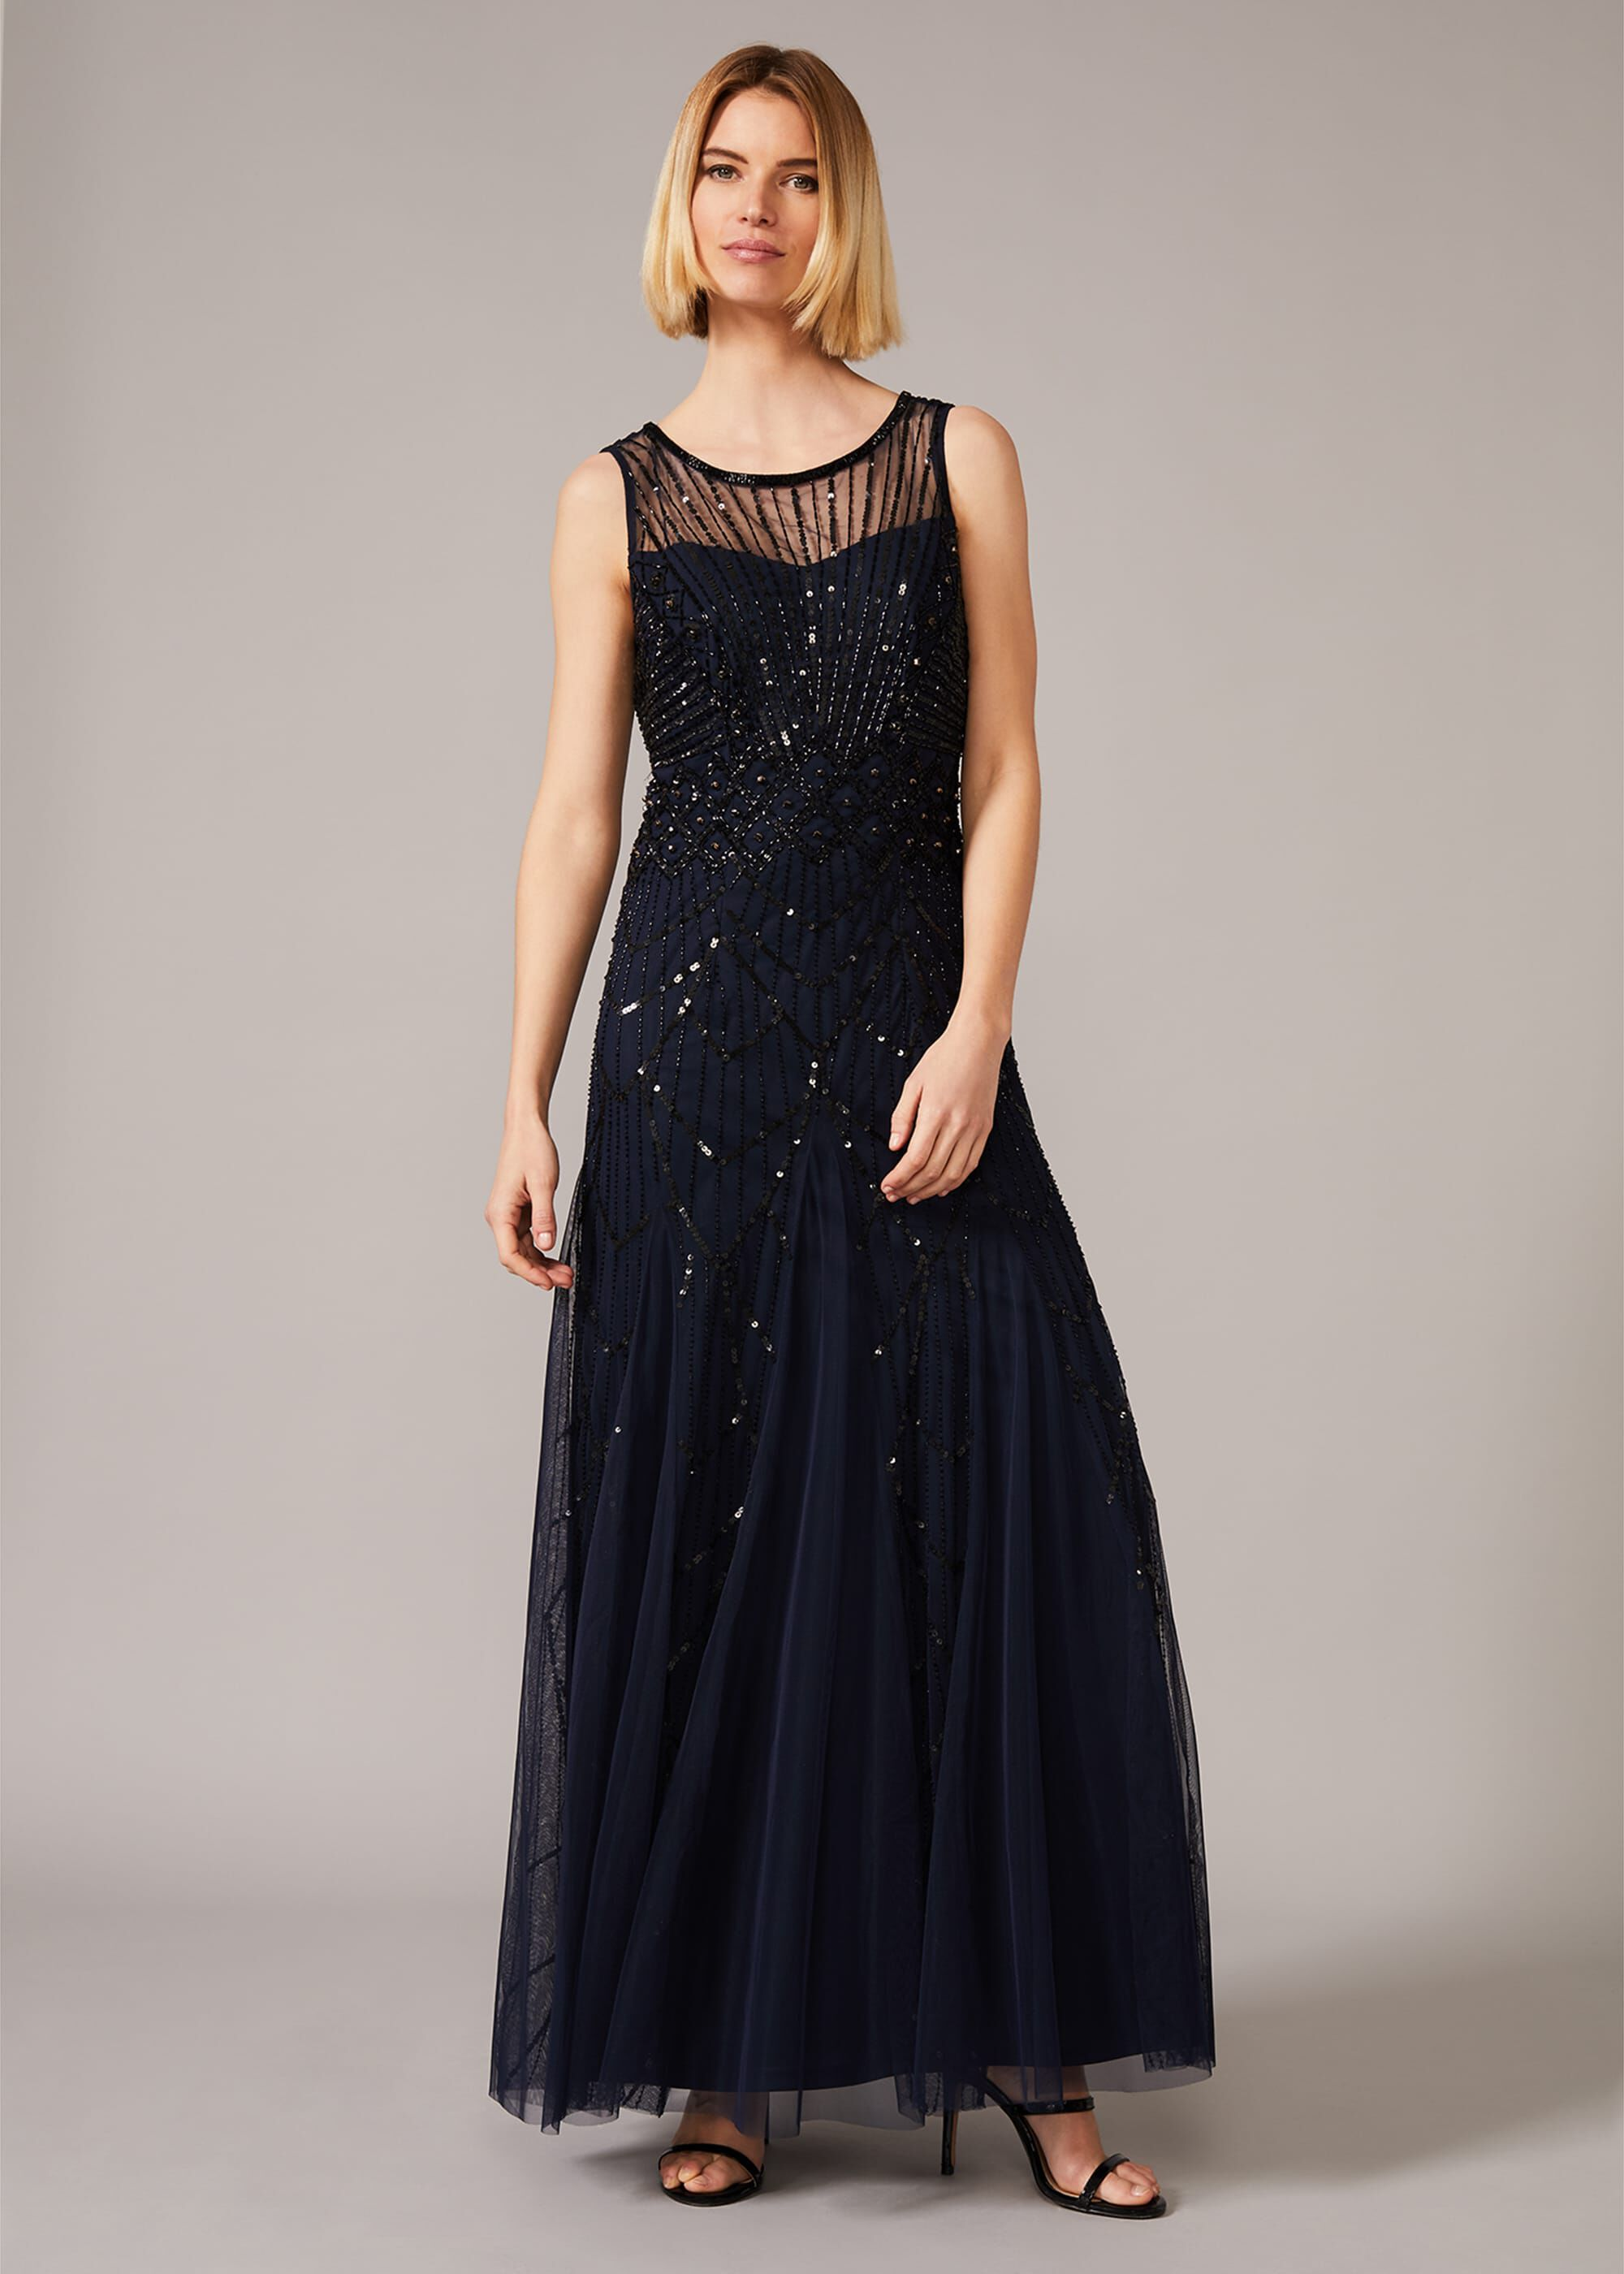 Phase Eight Greta Fully Beaded Dress, Blue, Maxi, Occasion Dress